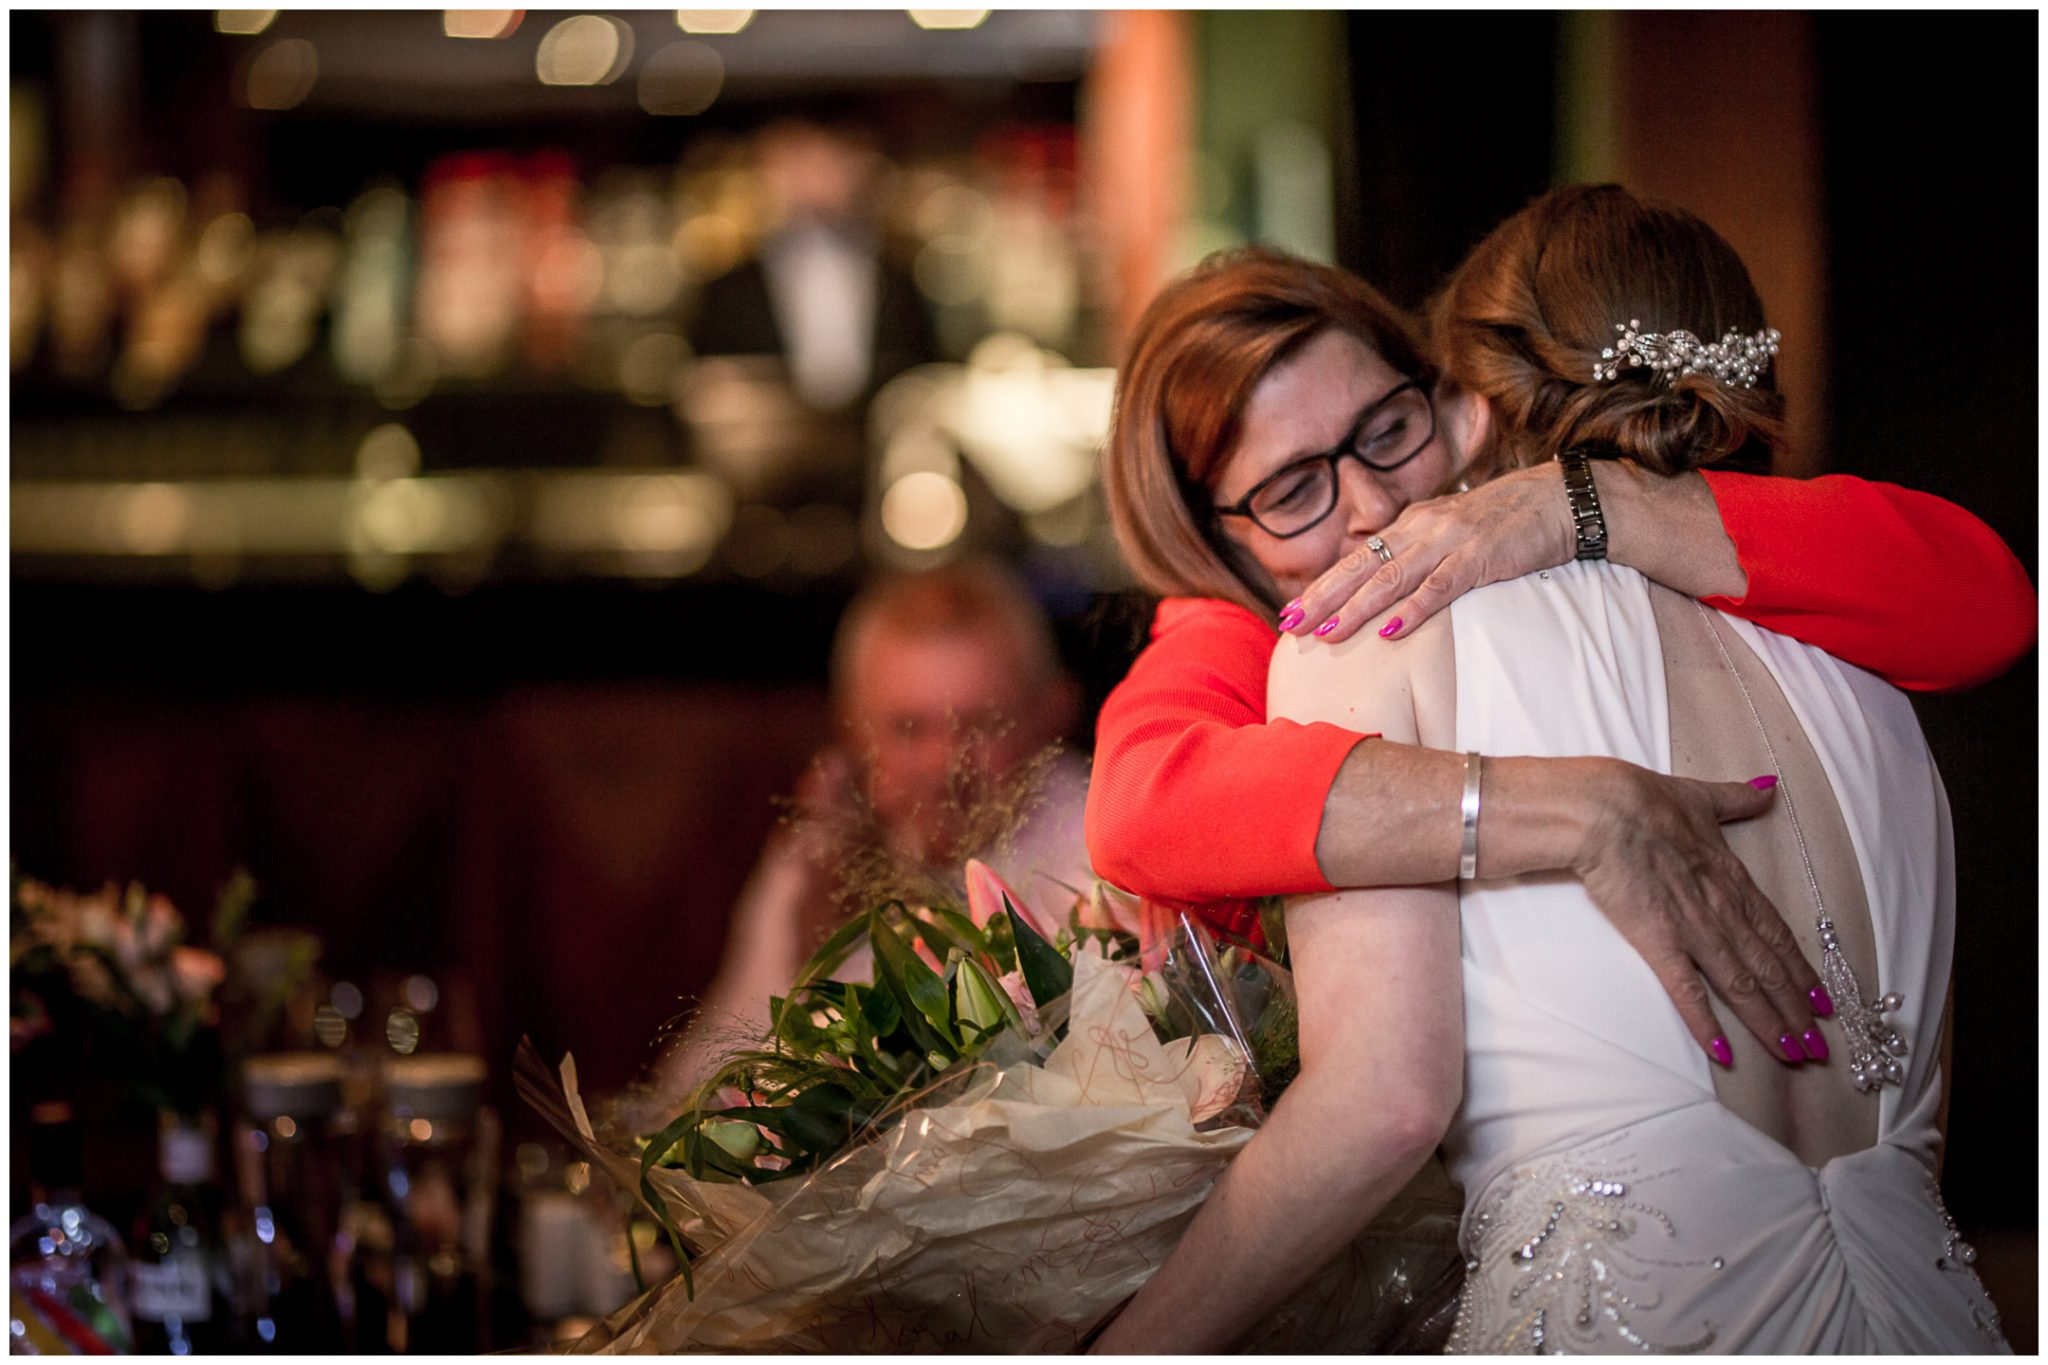 A hug for the bride during the speeches